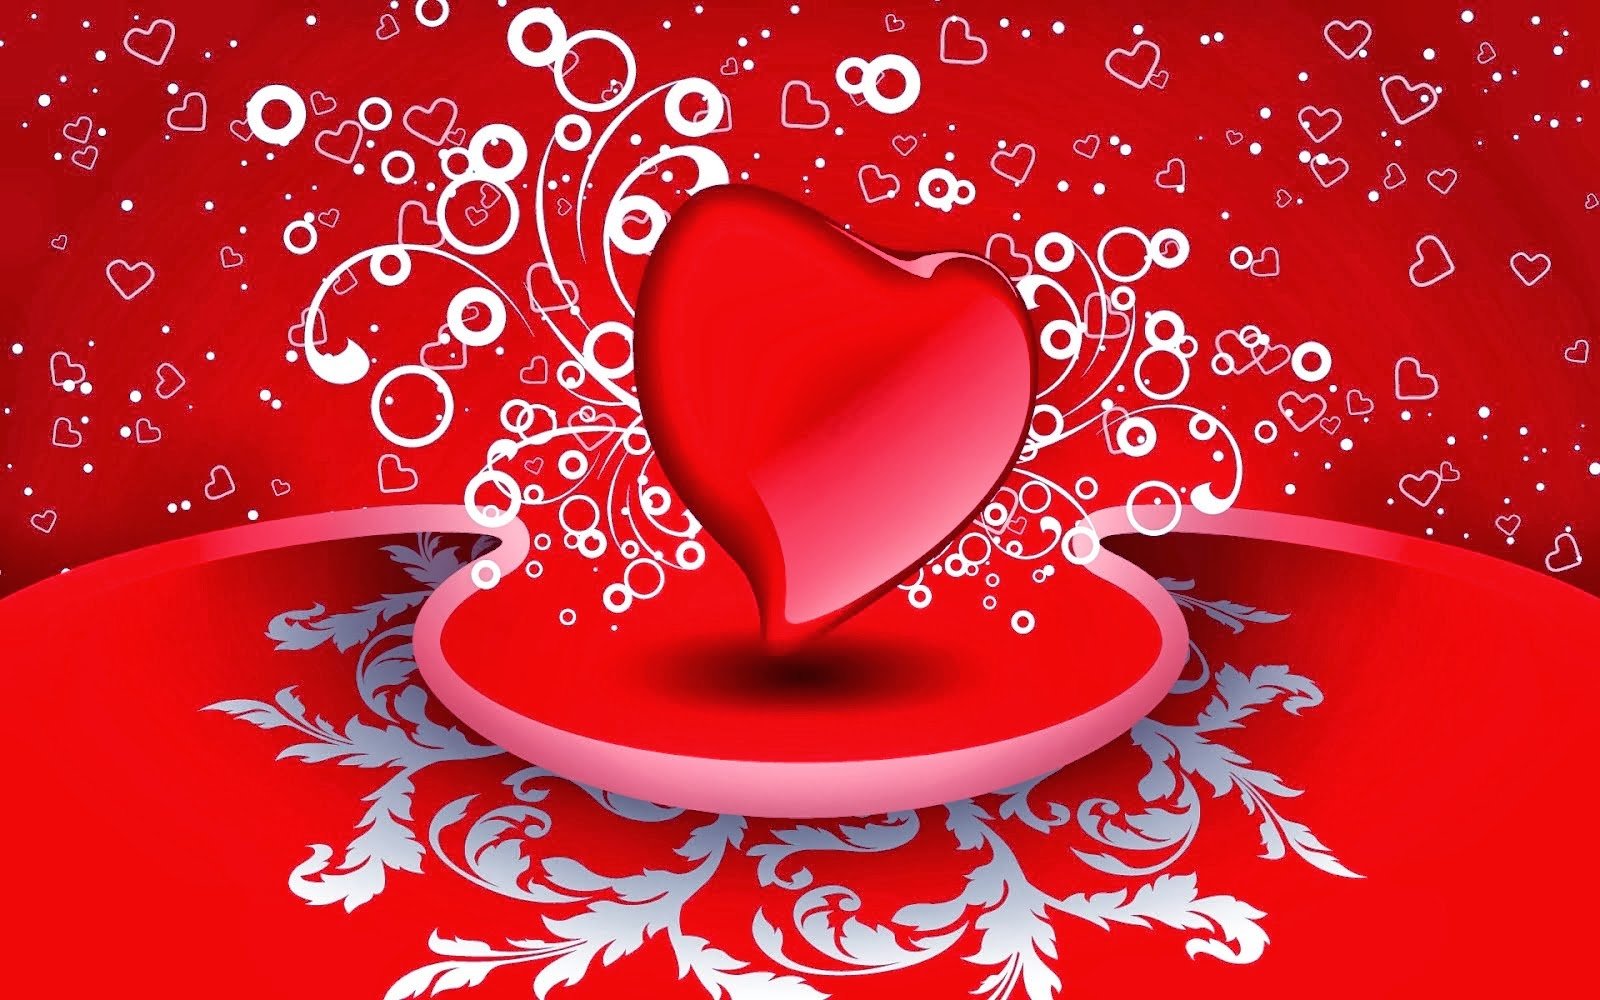 Valentines Day HD Wallpapers 2014 Download